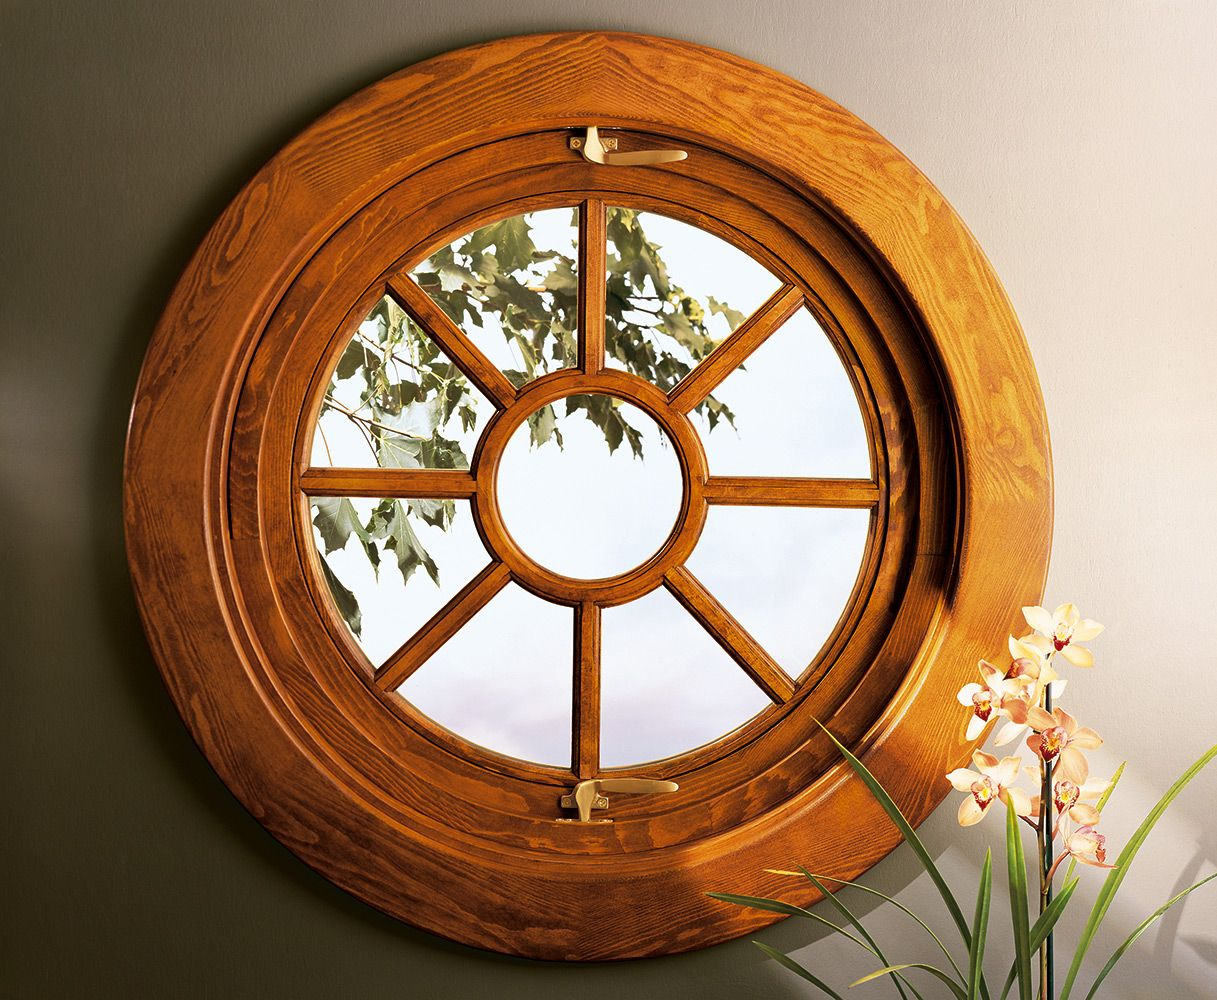 The Marvin Round Pivot Window provides a